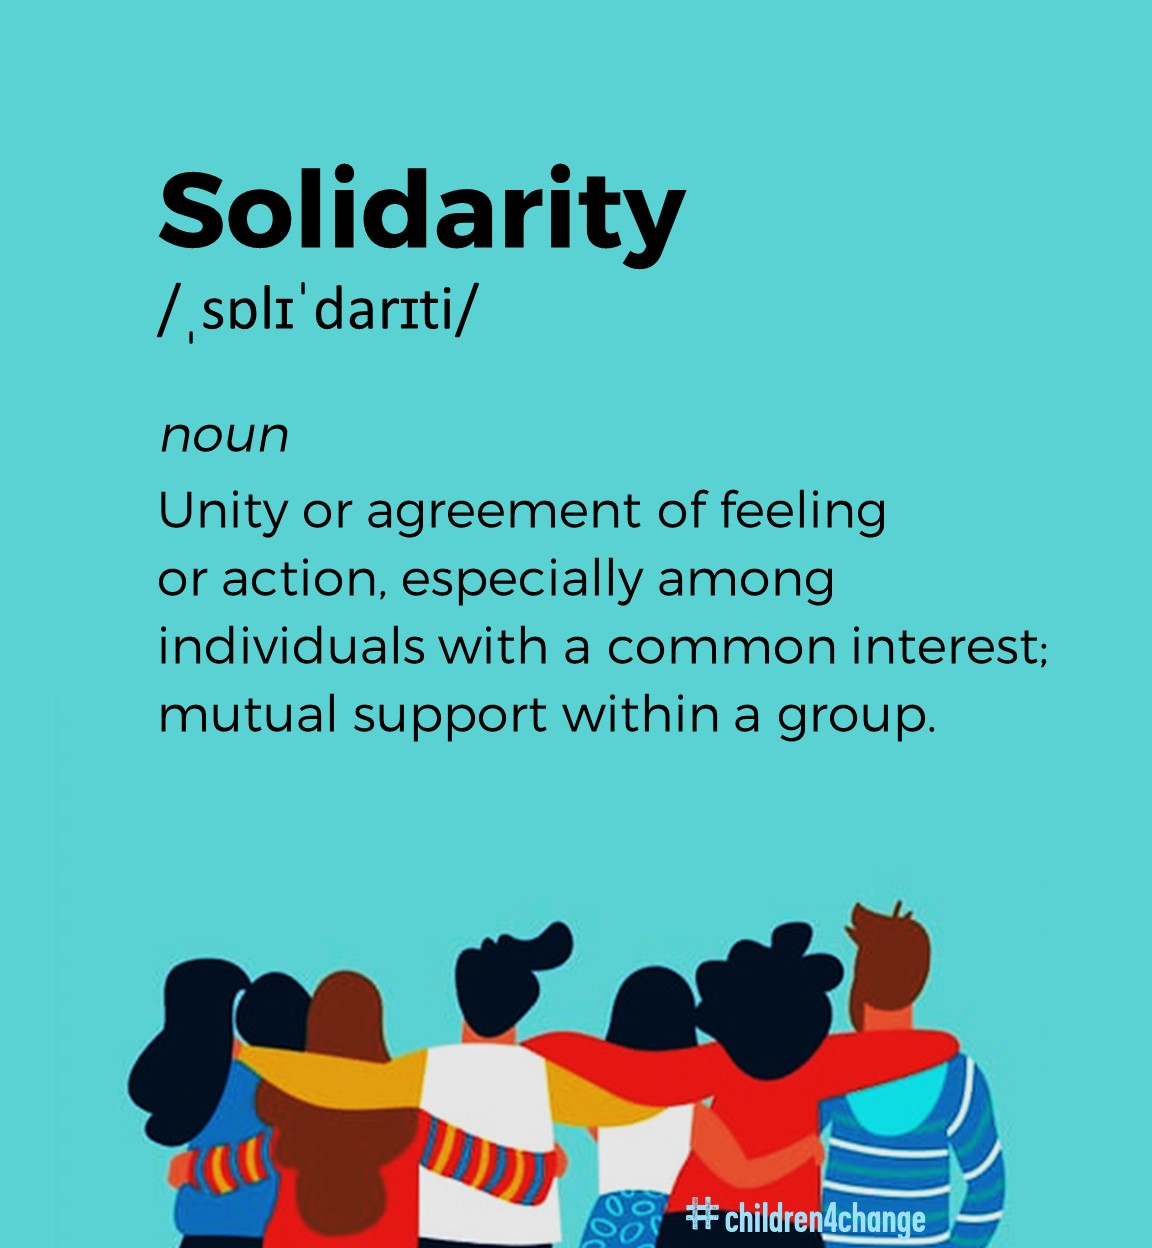 a poster with a definition of solidarity.